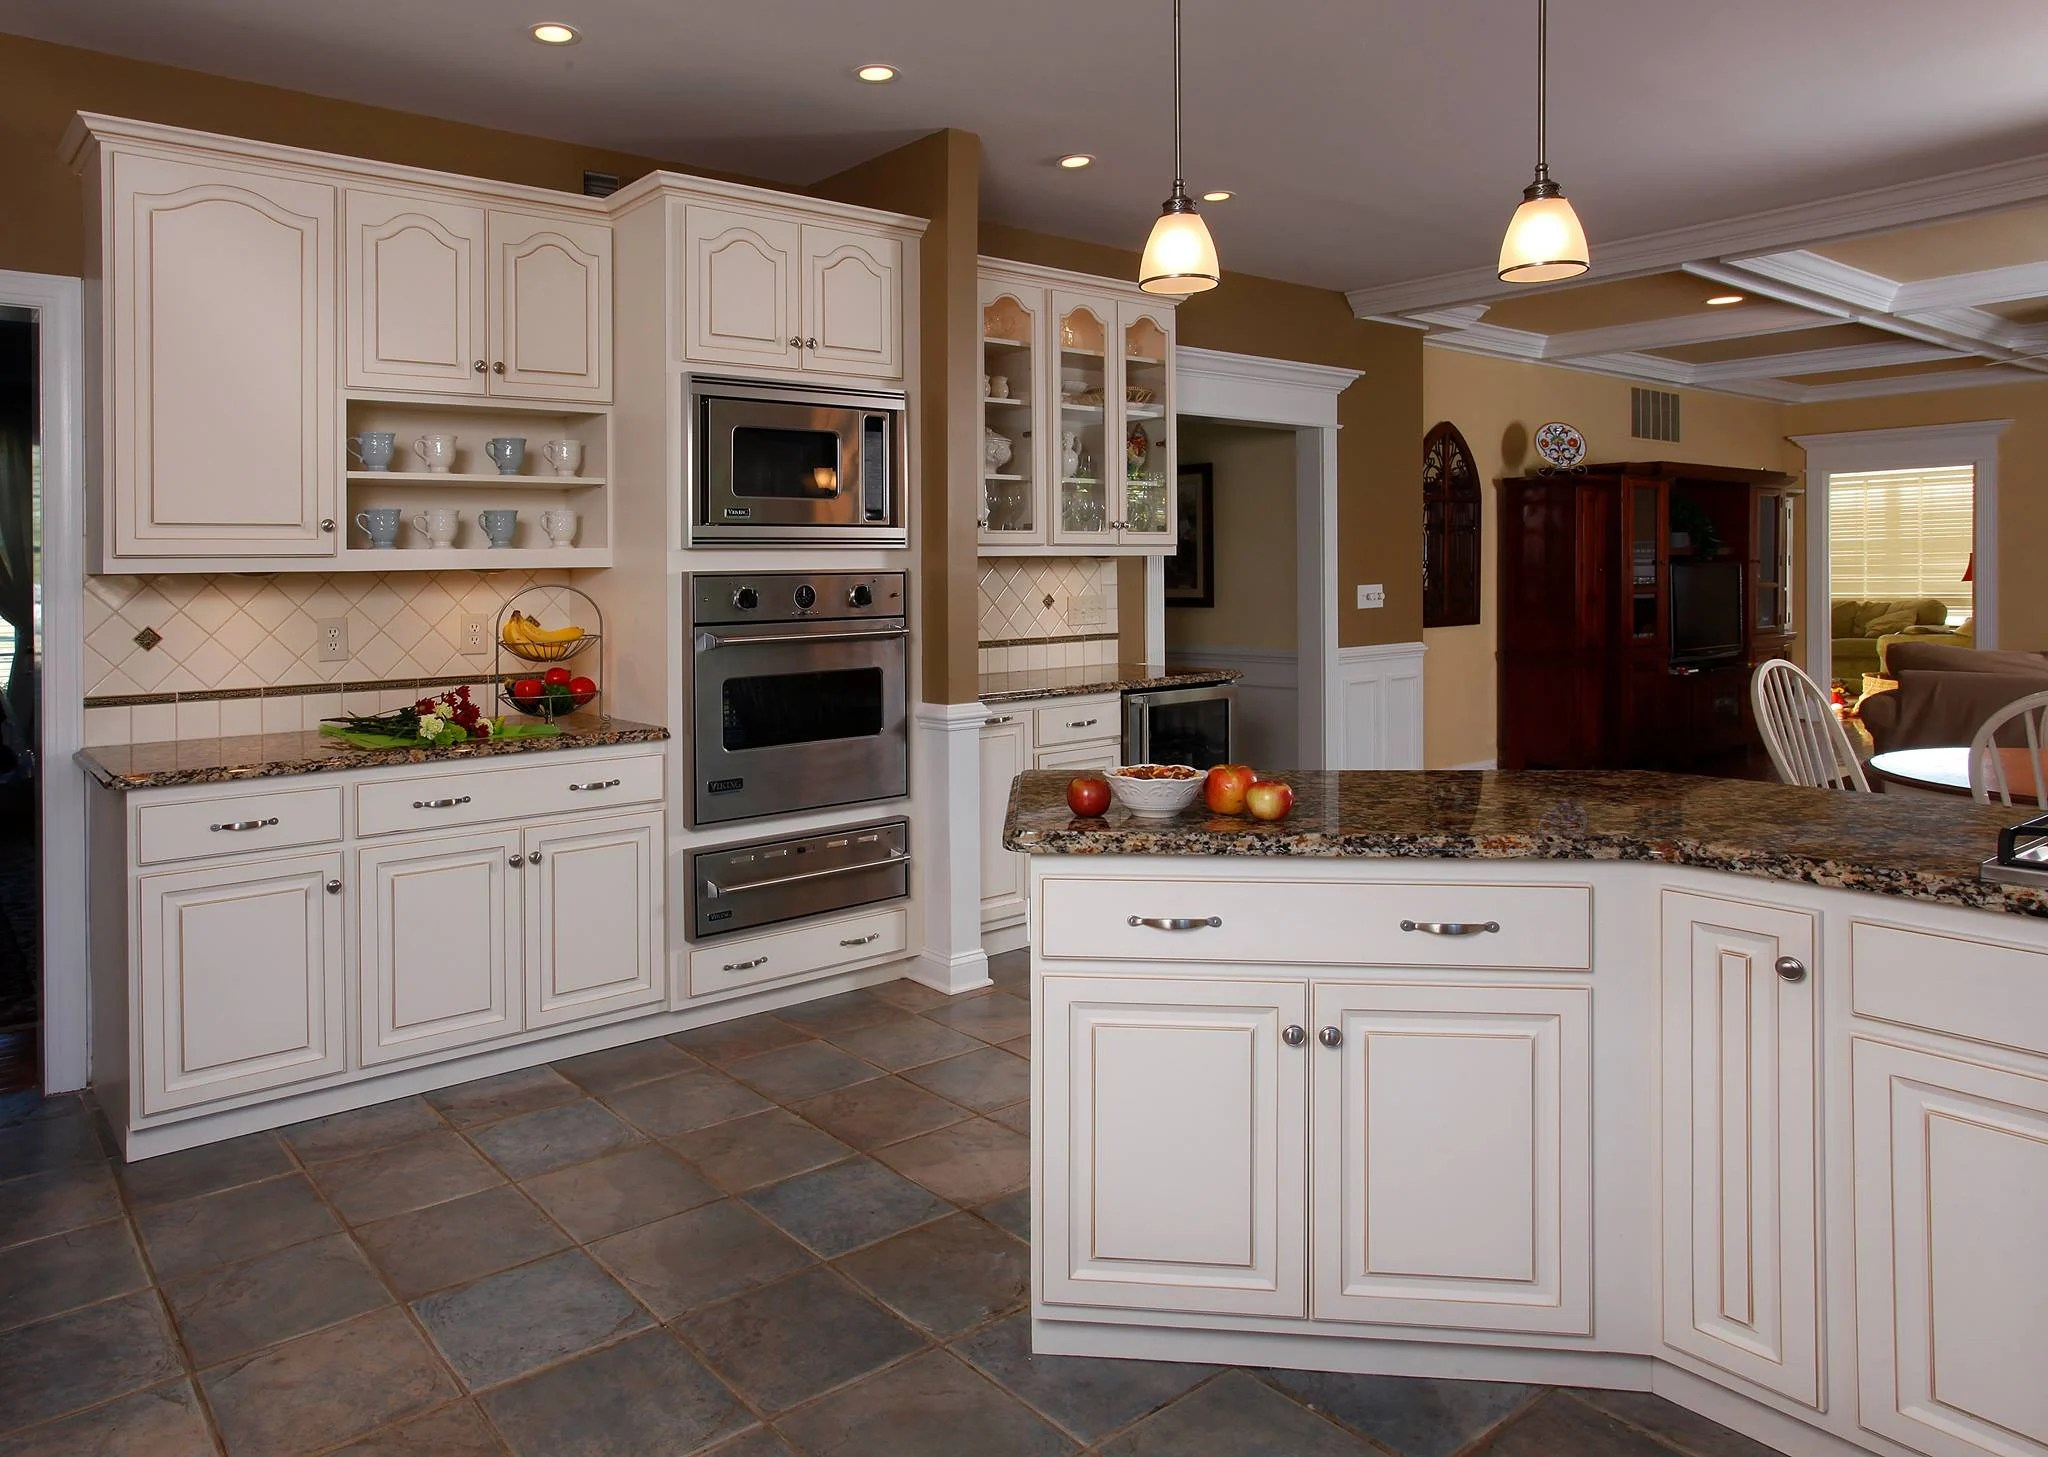 Kitchen Pics With White Cabinets Why Winter White Cabinets Are So Popular